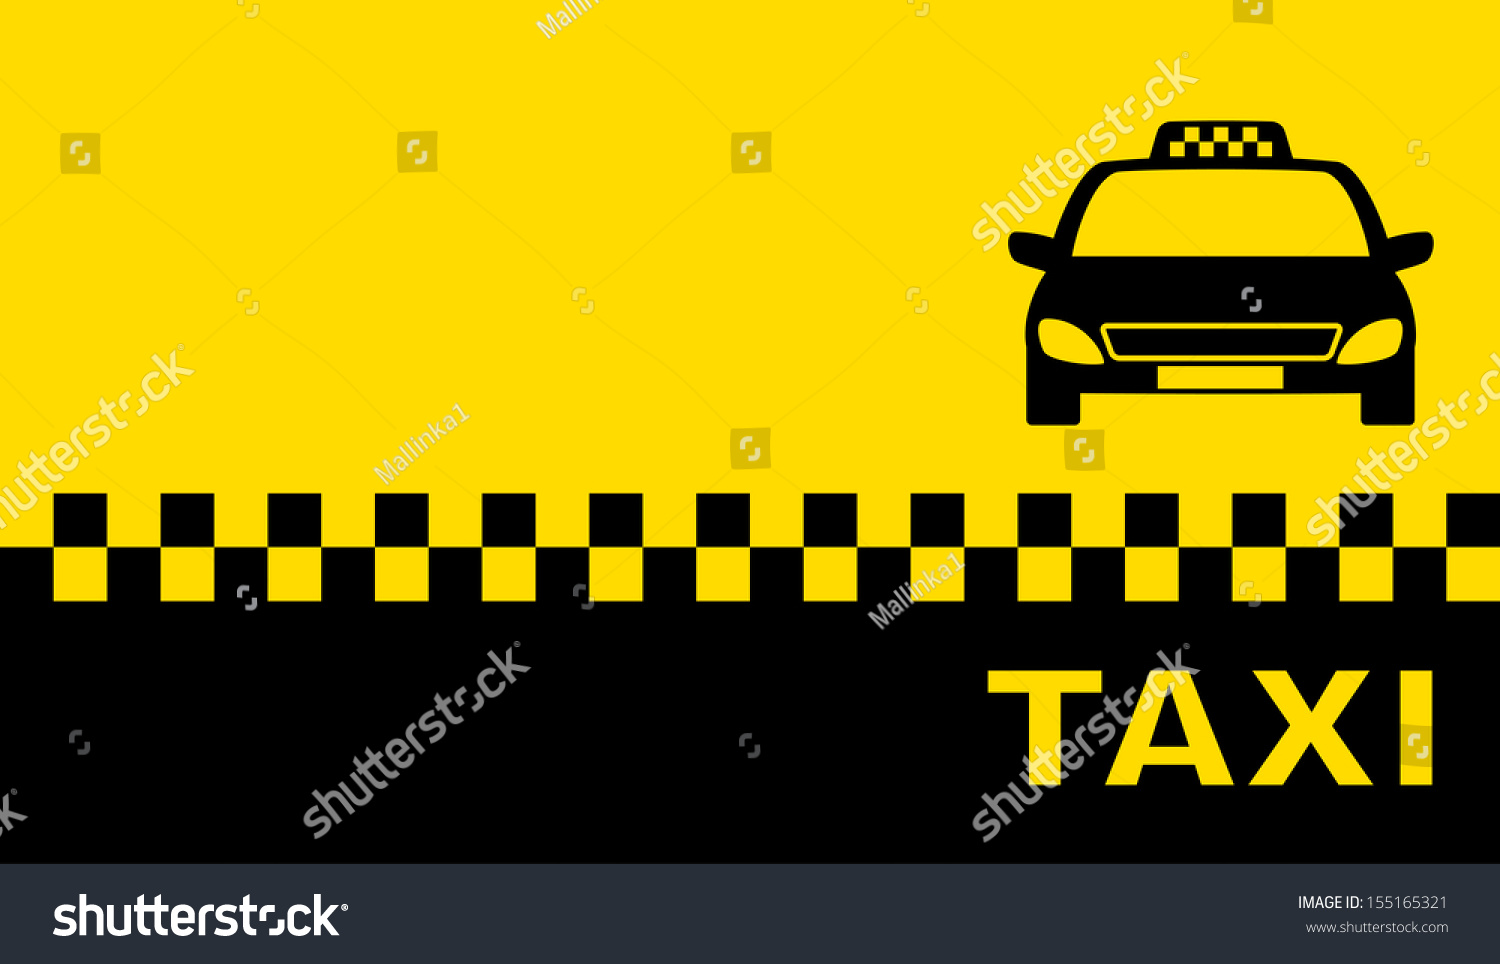 Business Card Taxi Place Text Stock Vector 155165321 - Shutterstock